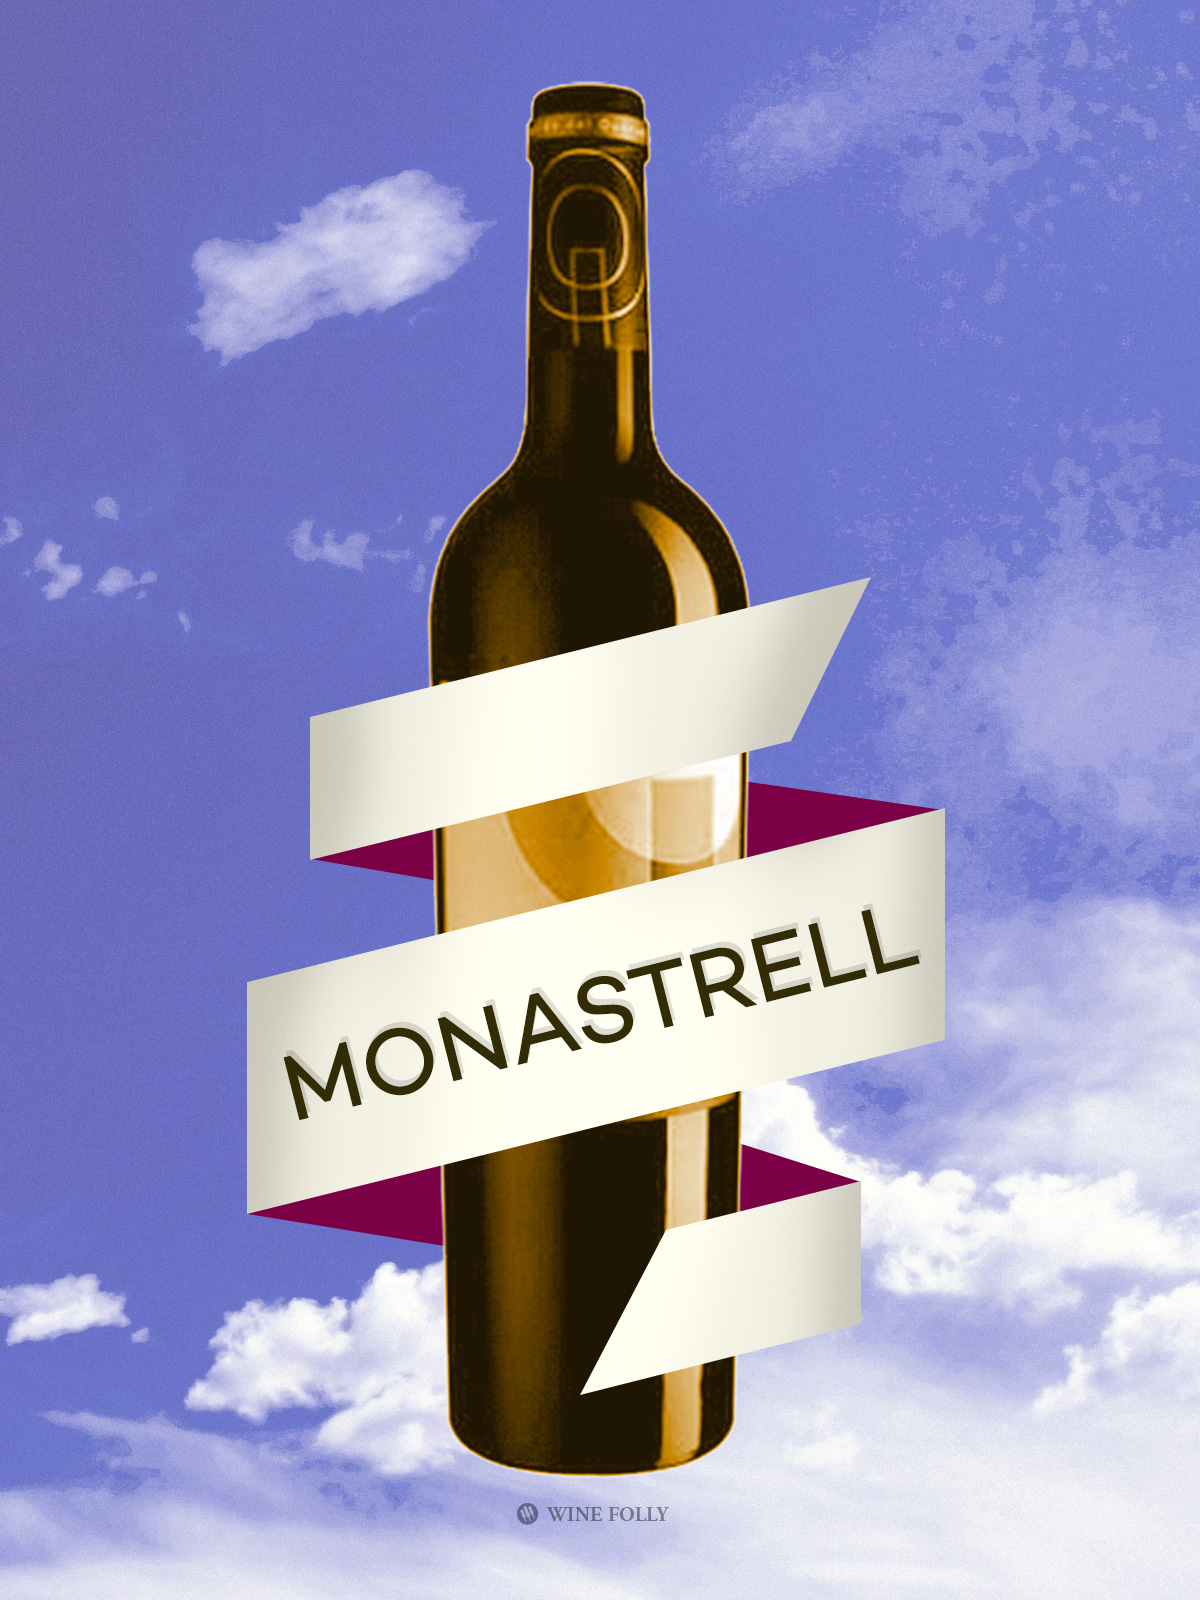 Monastrell wine bottle illustration by Wine Folly